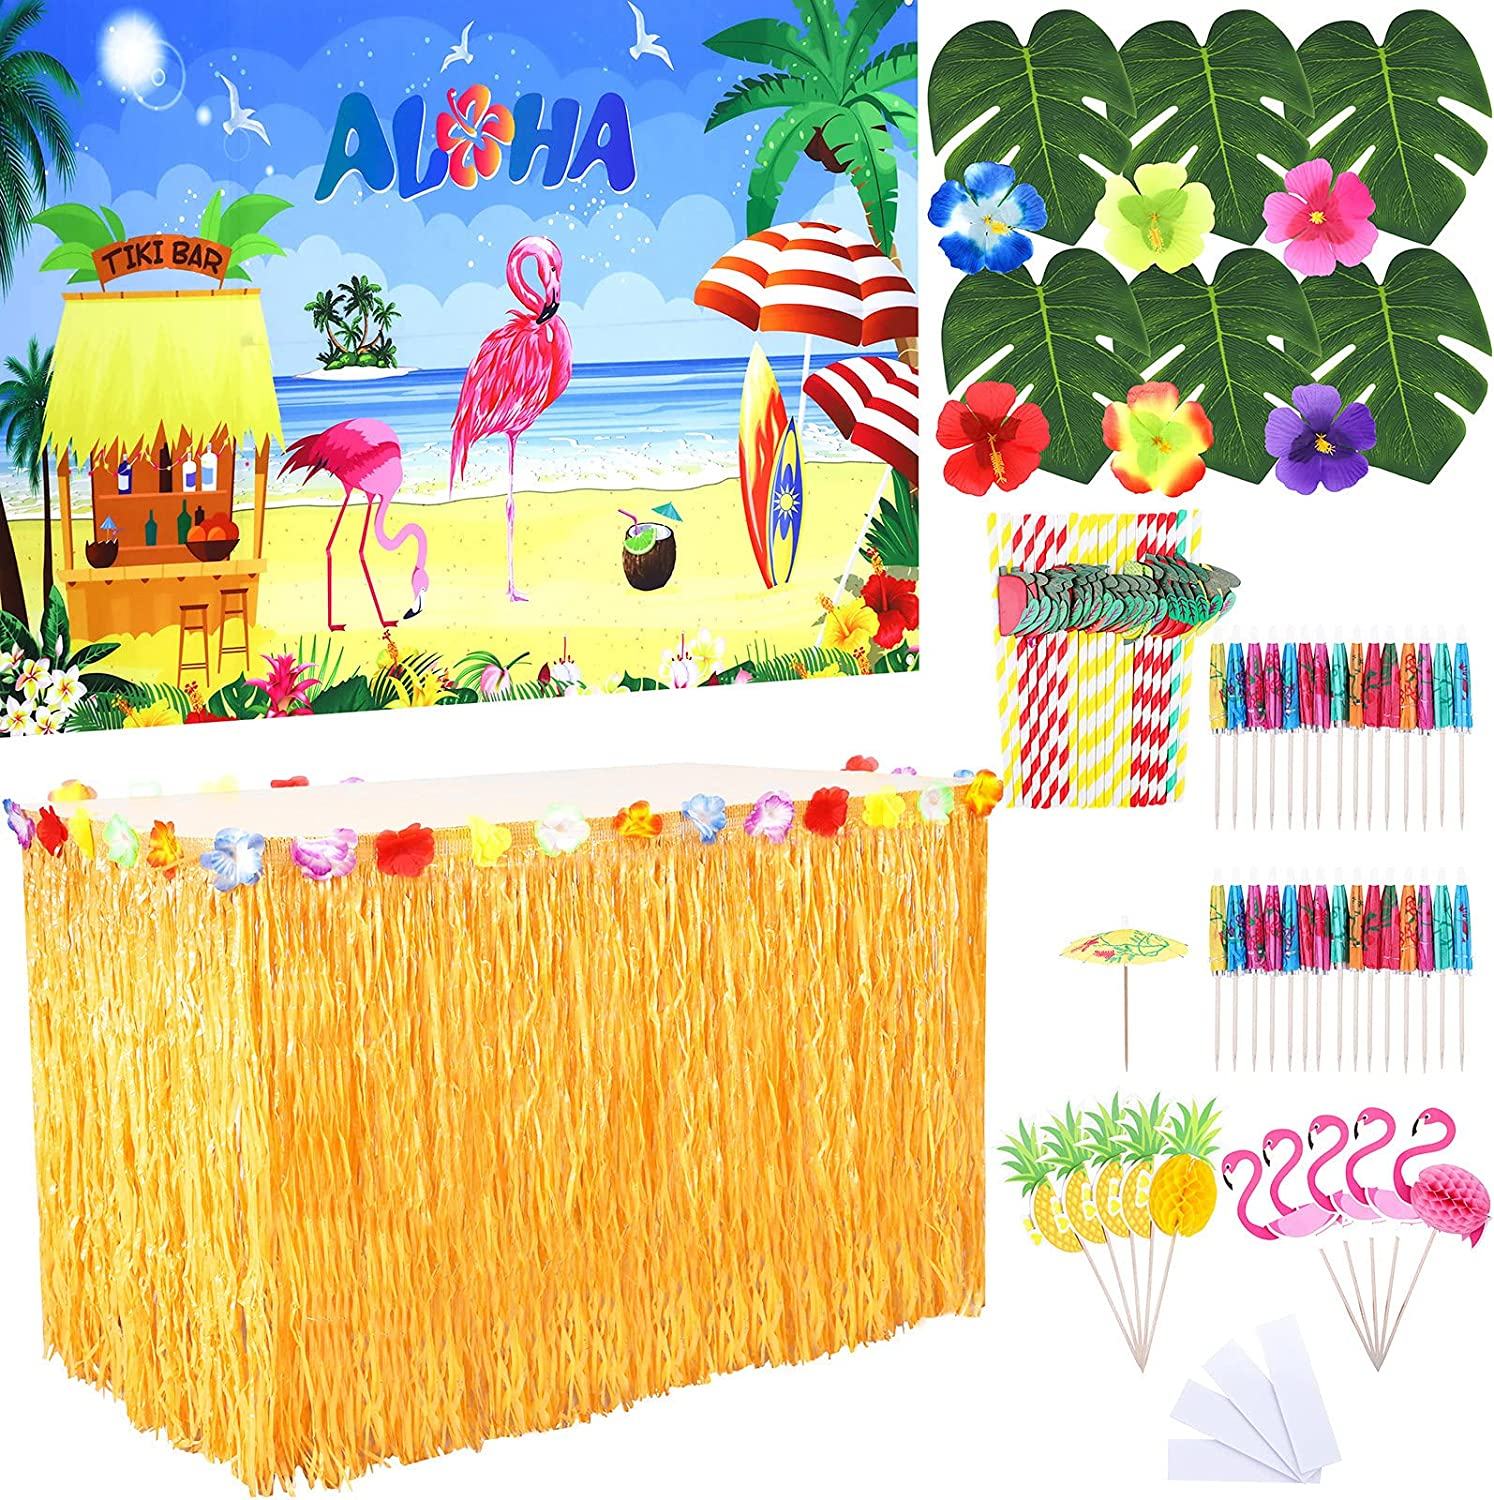 Elcoho 78 Pieces Straw Color Hawaiian Party Decorations Set Tropical Party Decor Kit Grass Table Skirts Including Palm Leaves for Theme Luau Tropical Party Supplies